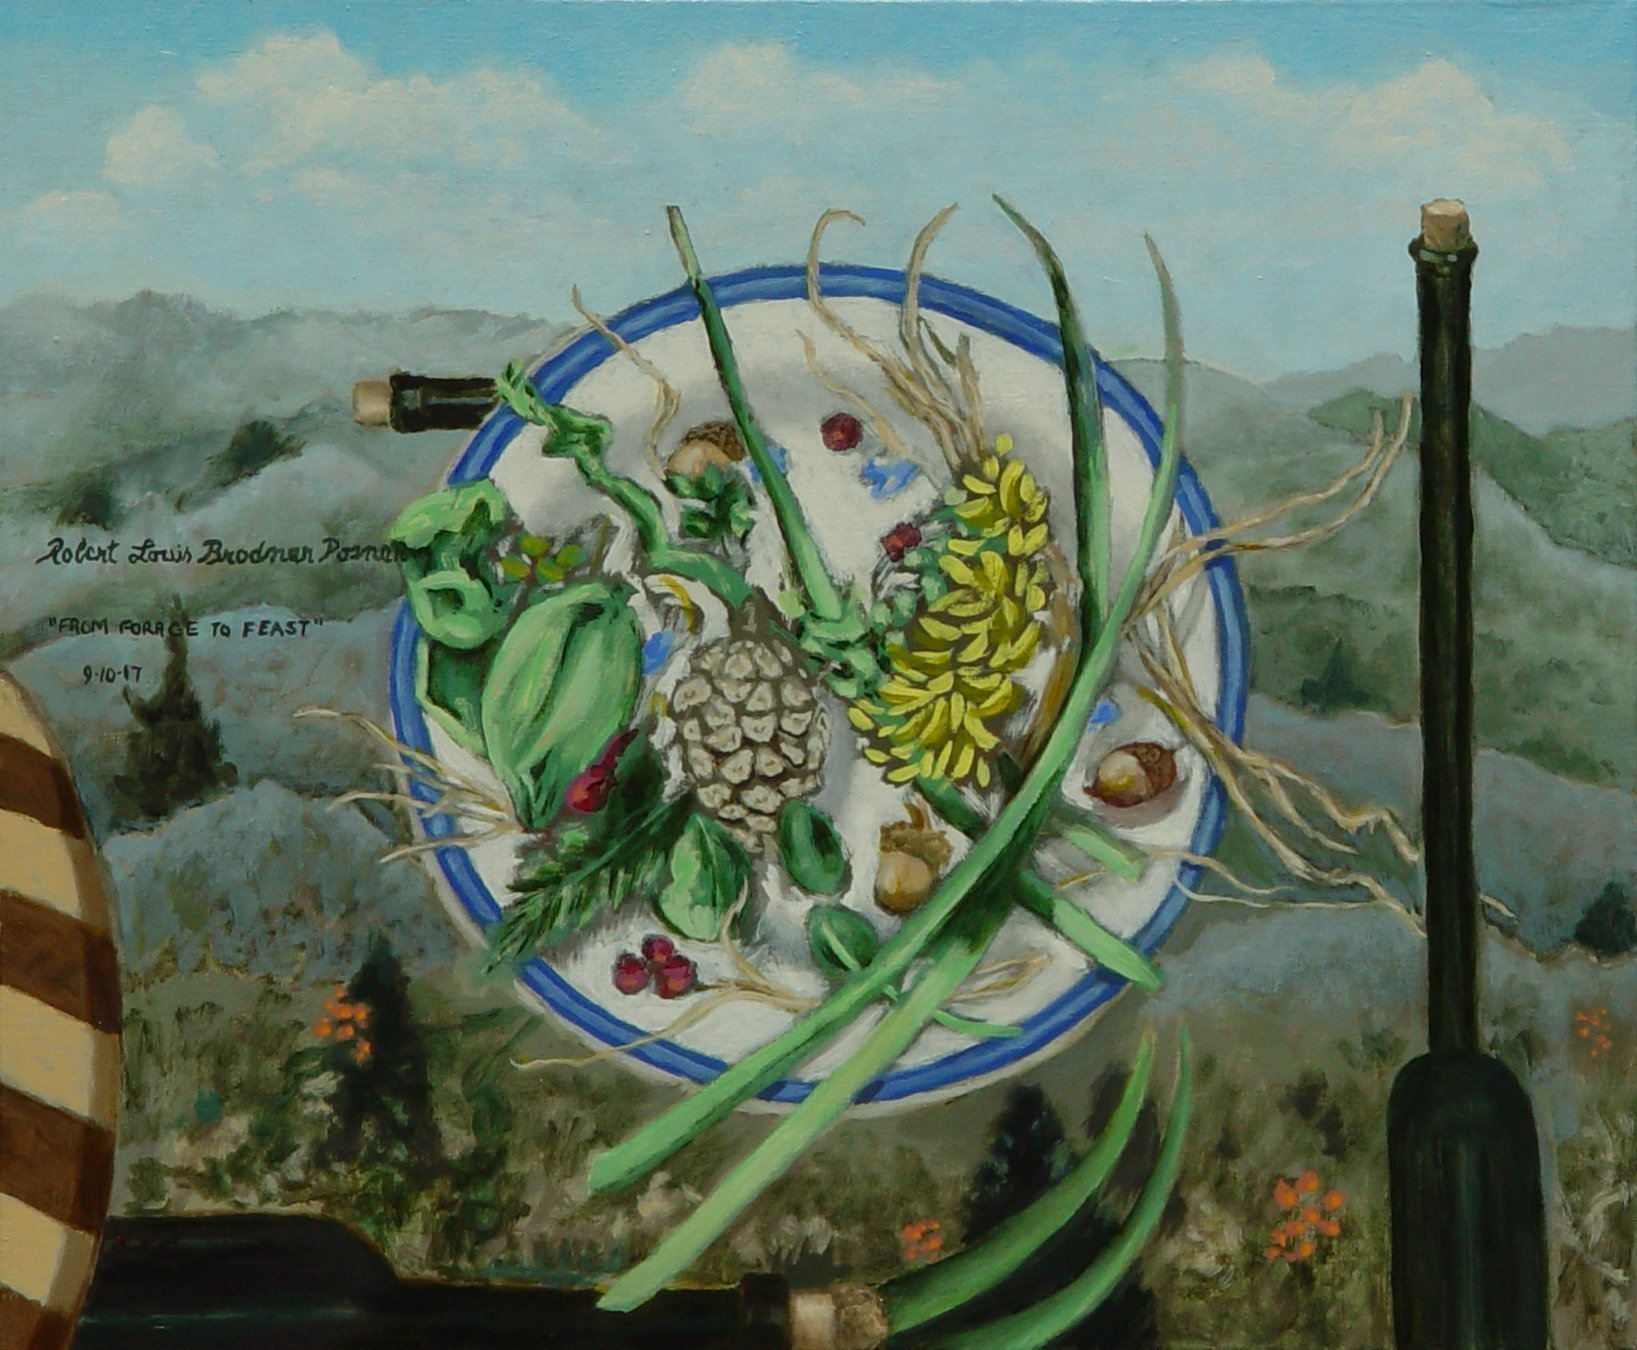 Lou Posner: 'From Forage to Feast', 2017 Oil Painting, Food. Artist Description: Local forage from Perry County, Indidna, melded with bottles of wine and olive oil against a landscape of the Blue Ridge Parkway near Asheville, North Carolina. Oh, and a cutting board to prepare the meal. ...